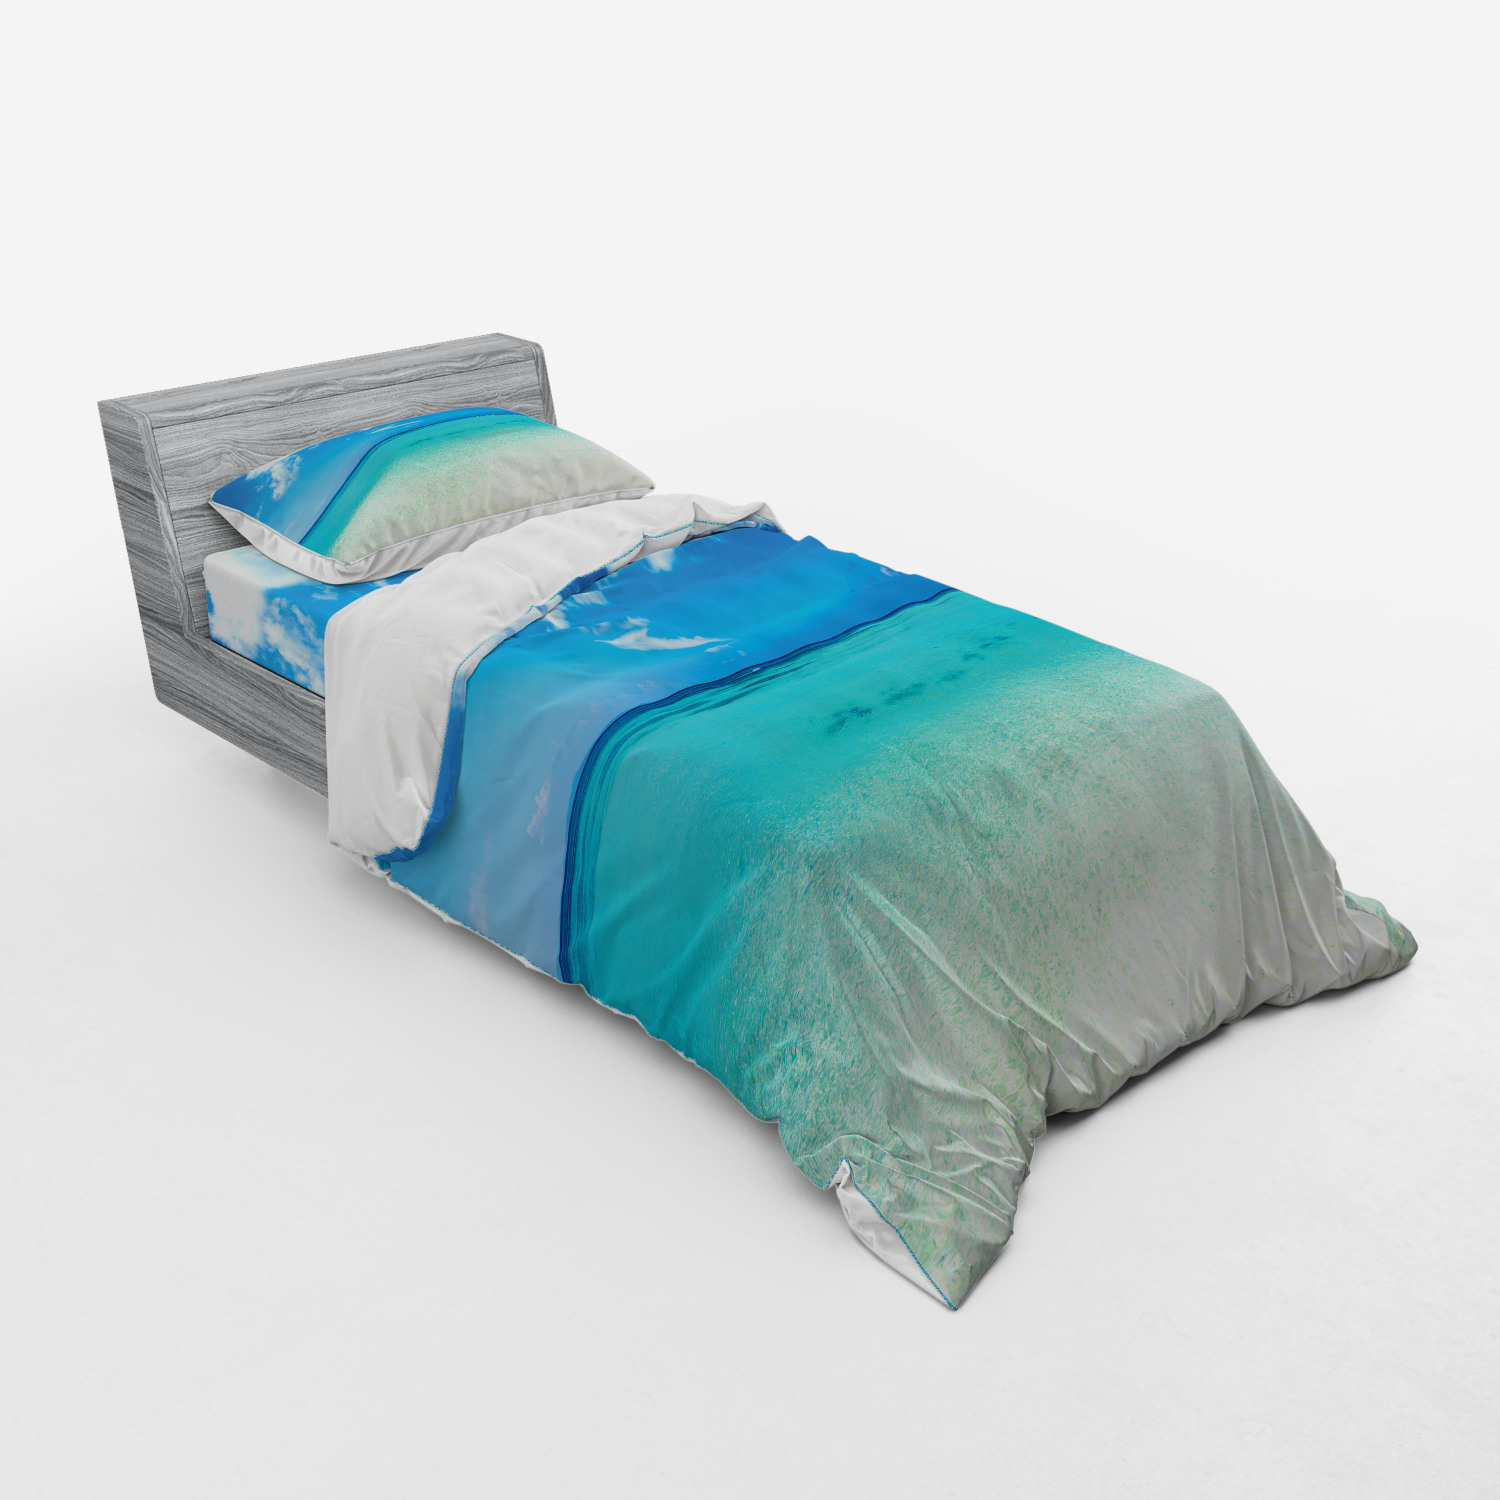 thumbnail 125 - Ambesonne Summer Bedding Set Duvet Cover Sham Fitted Sheet in 3 Sizes